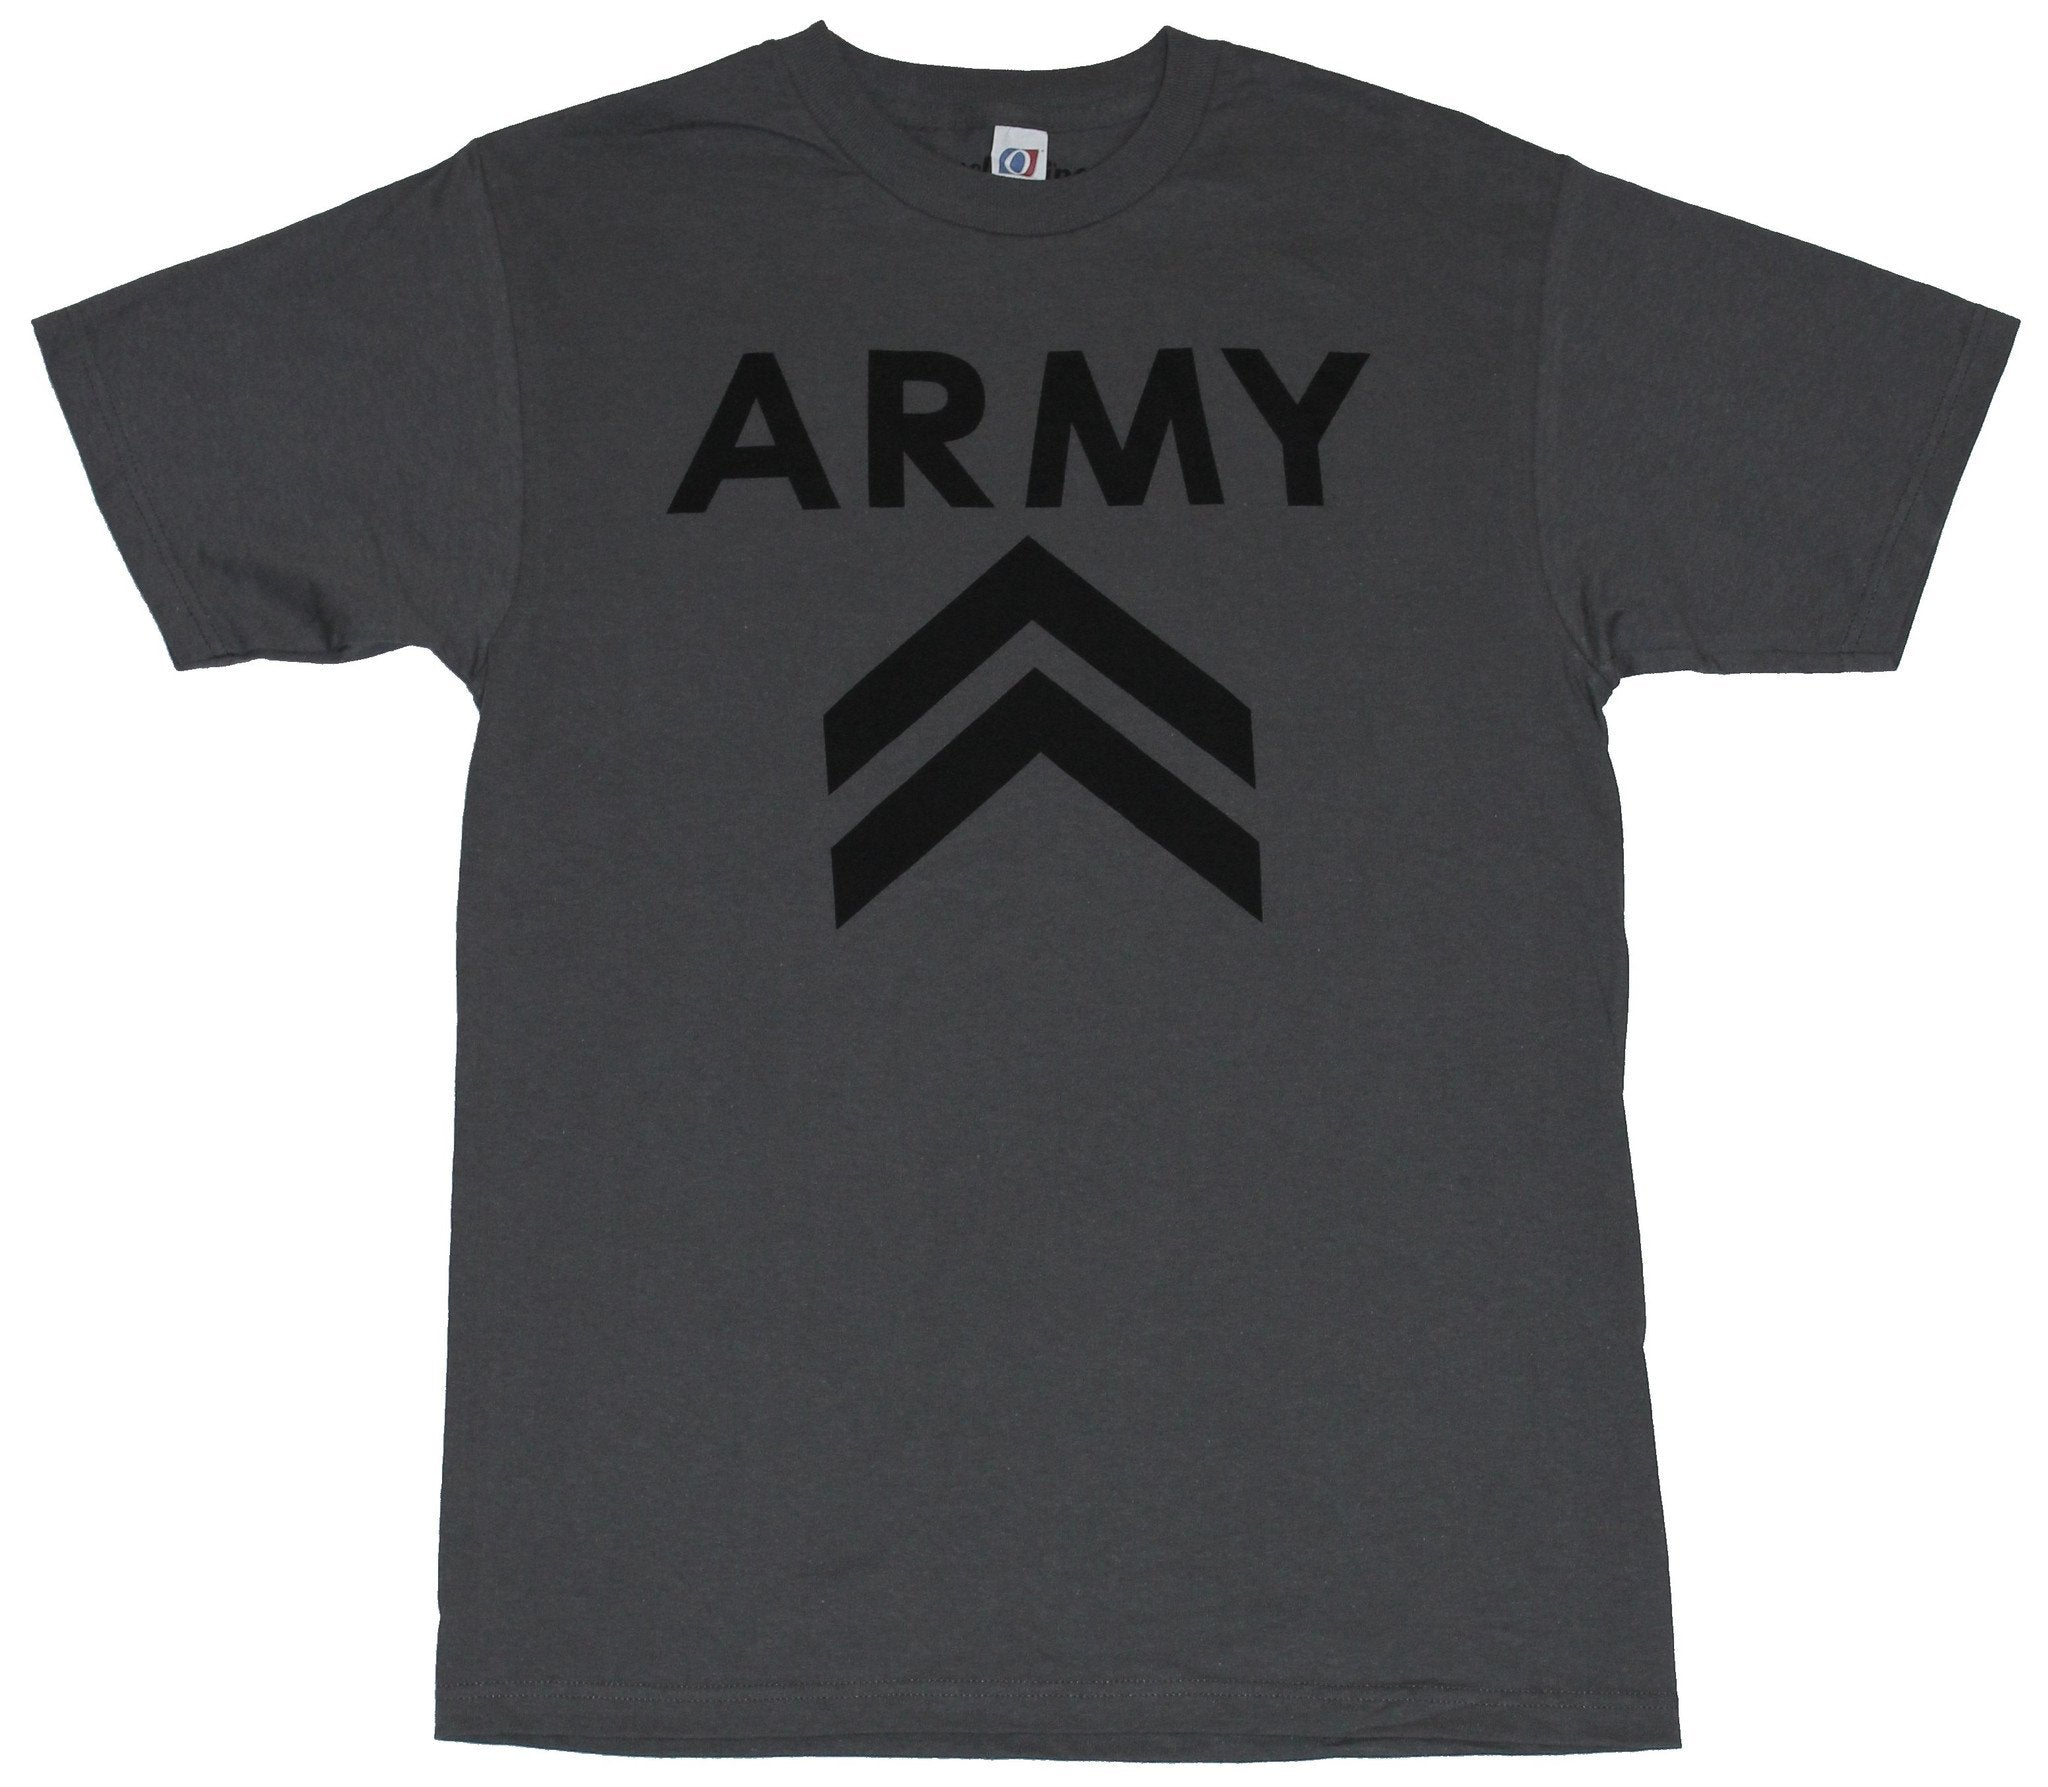 Army Mens T-Shirt - Double Bars Simple Logo Image